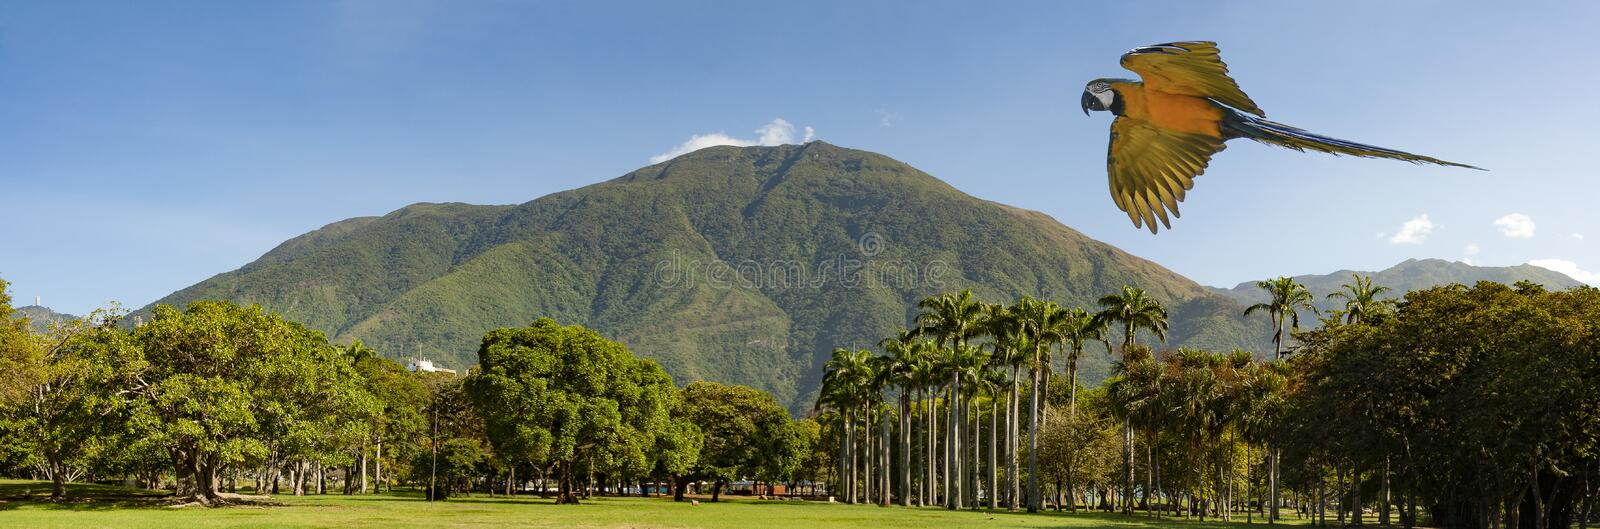 View of the iconic Caracas mountain el Avila or Waraira Repano and flying macaw.  royalty free stock photography